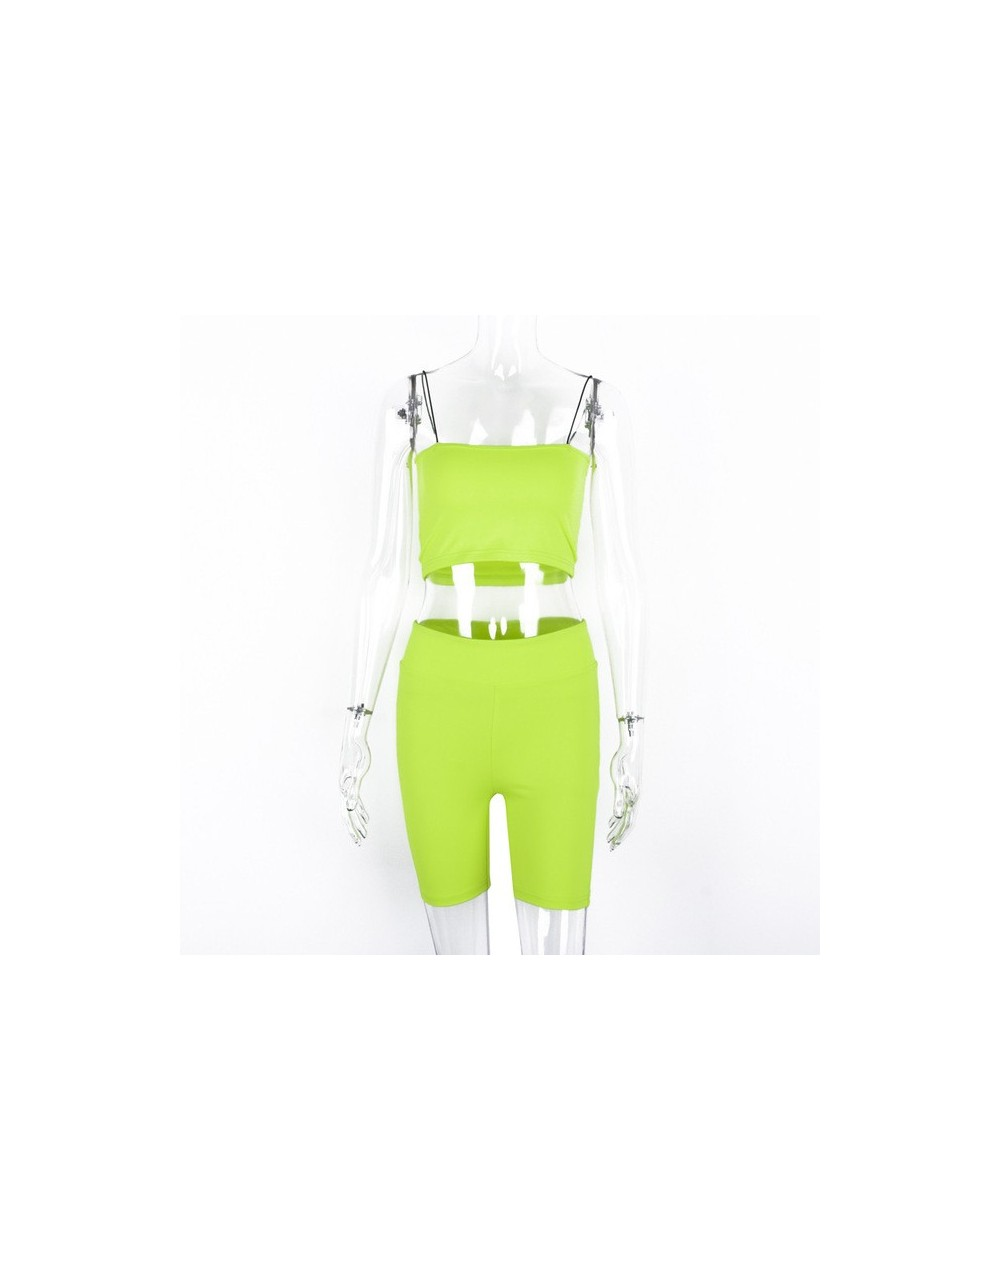 spaghetti straps camis shorts 2 pieces neon green sets 2019 summer women new arrival casual crop tops solid sets - Green - 4...